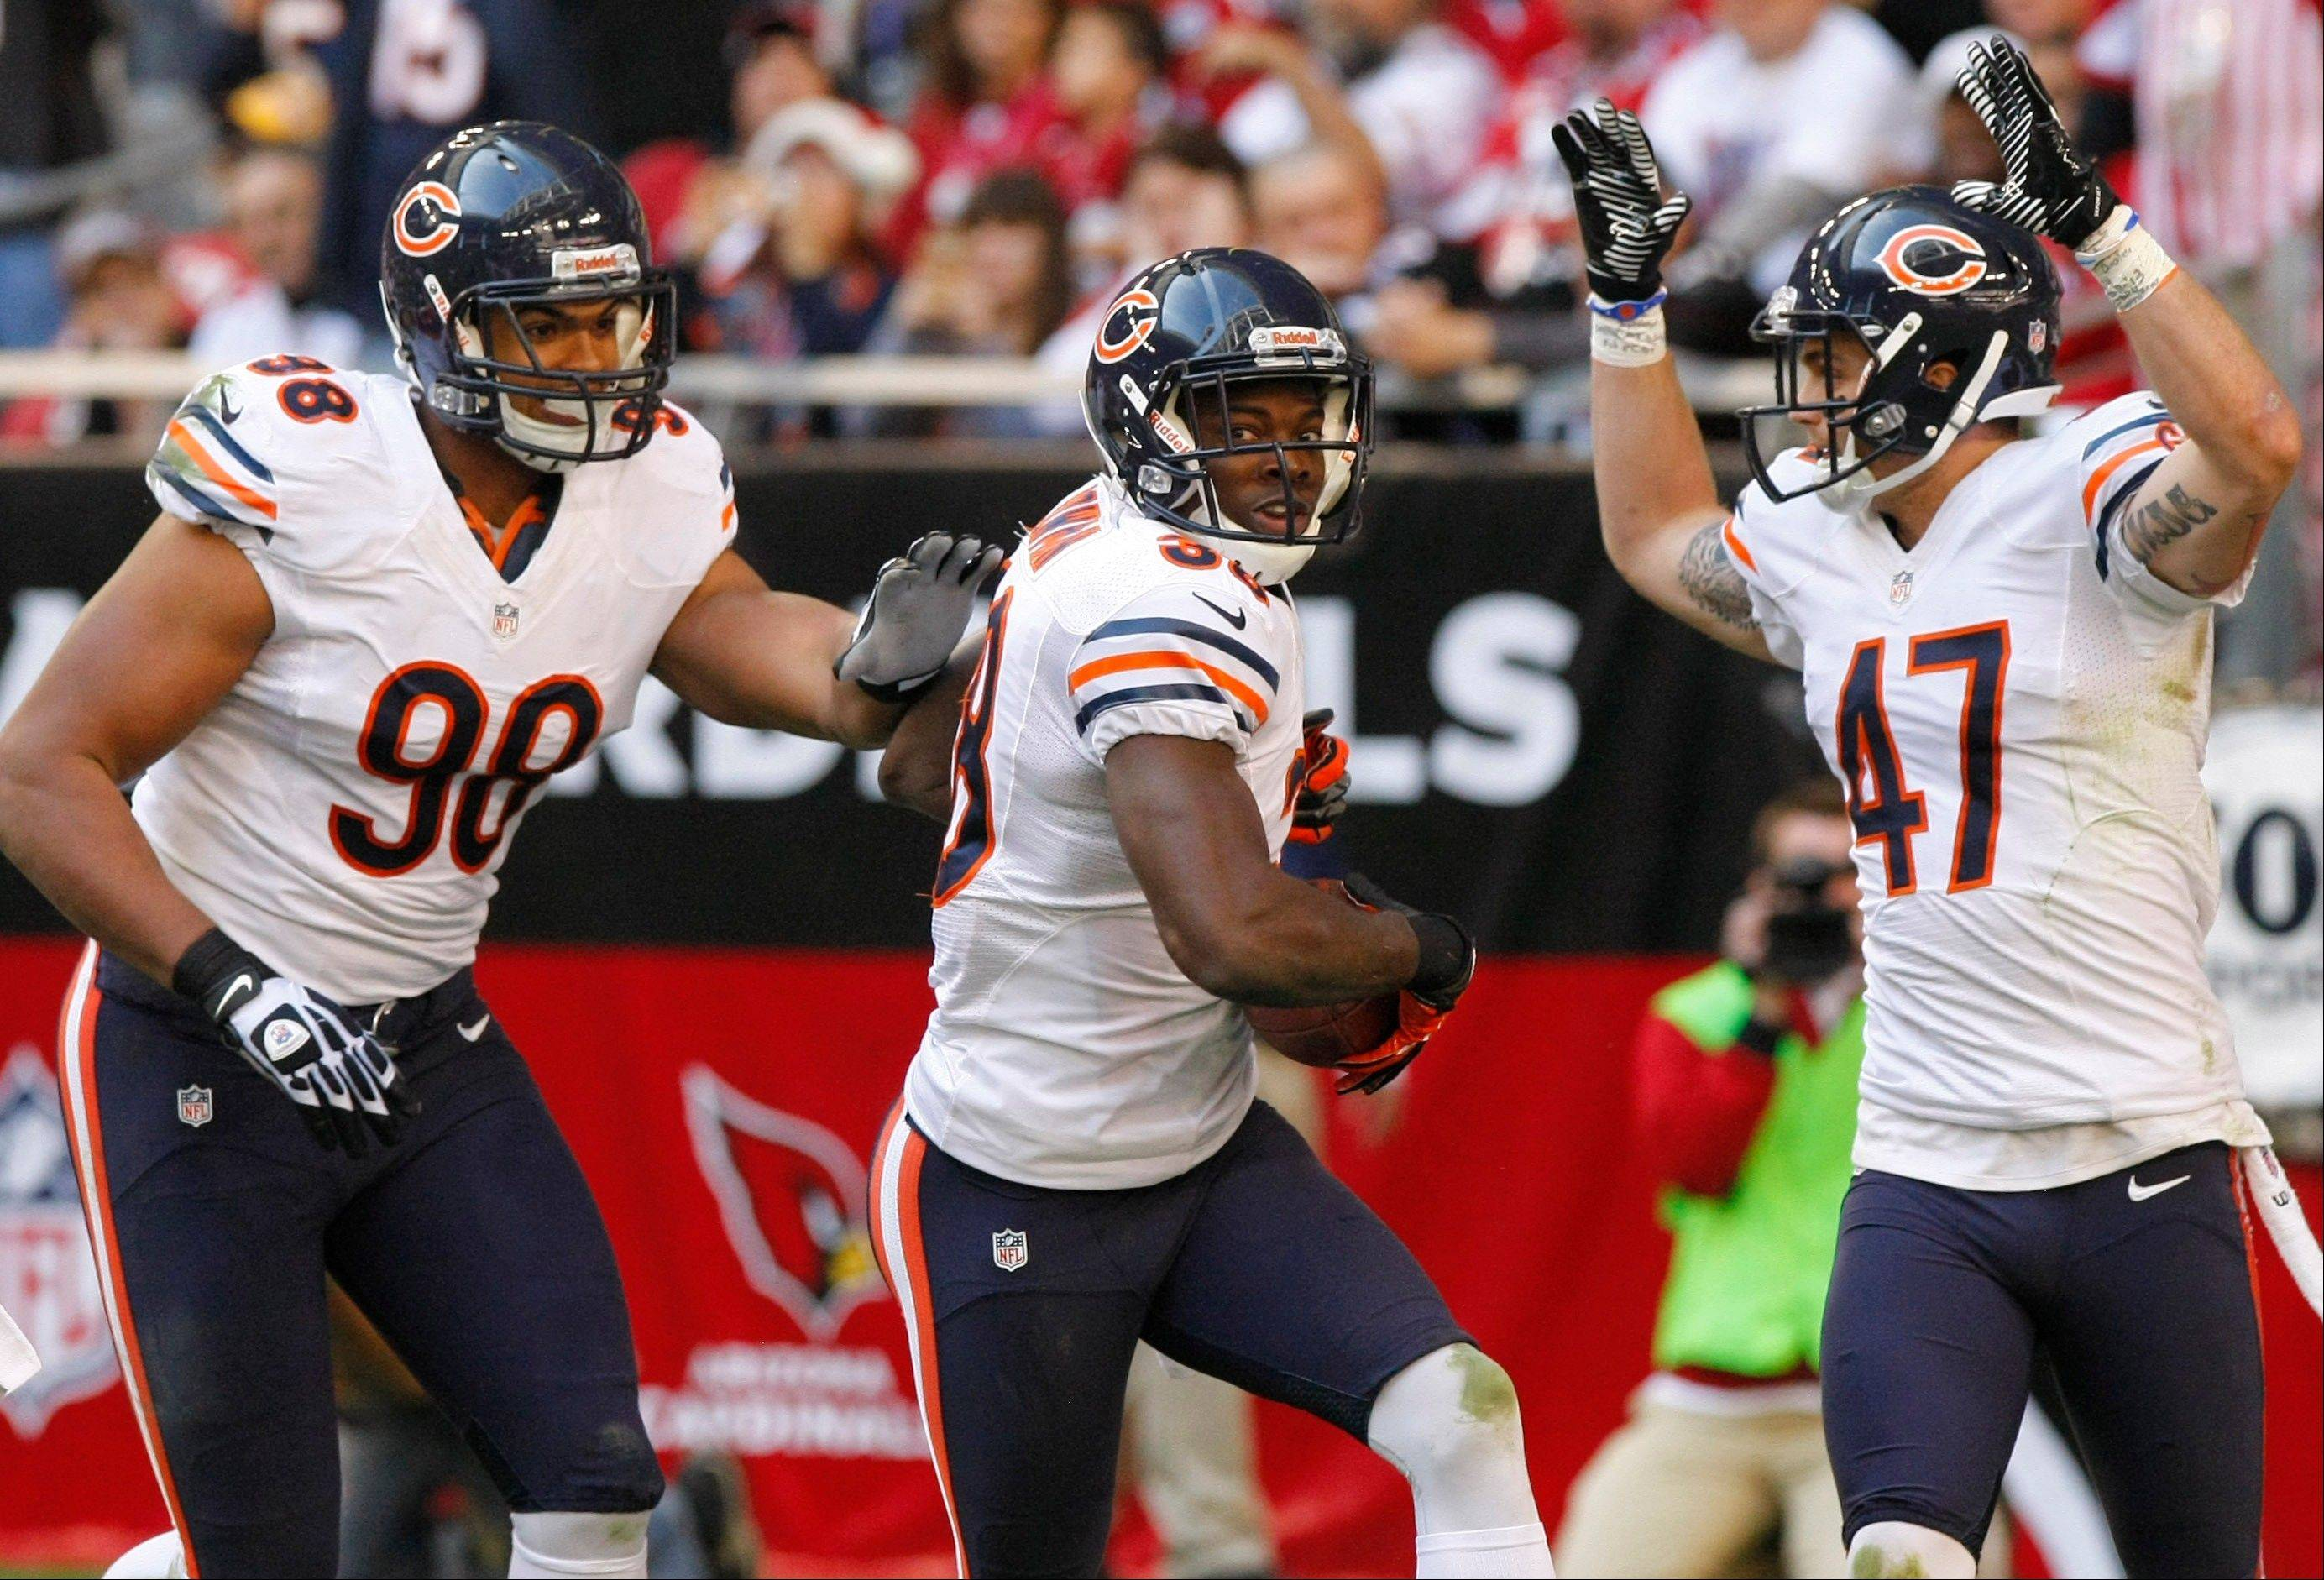 Chicago Bears defensive back Zack Bowman celebrates his touchdown with teammates Corey Wootton (98) and Chris Conte (47) during the first half.